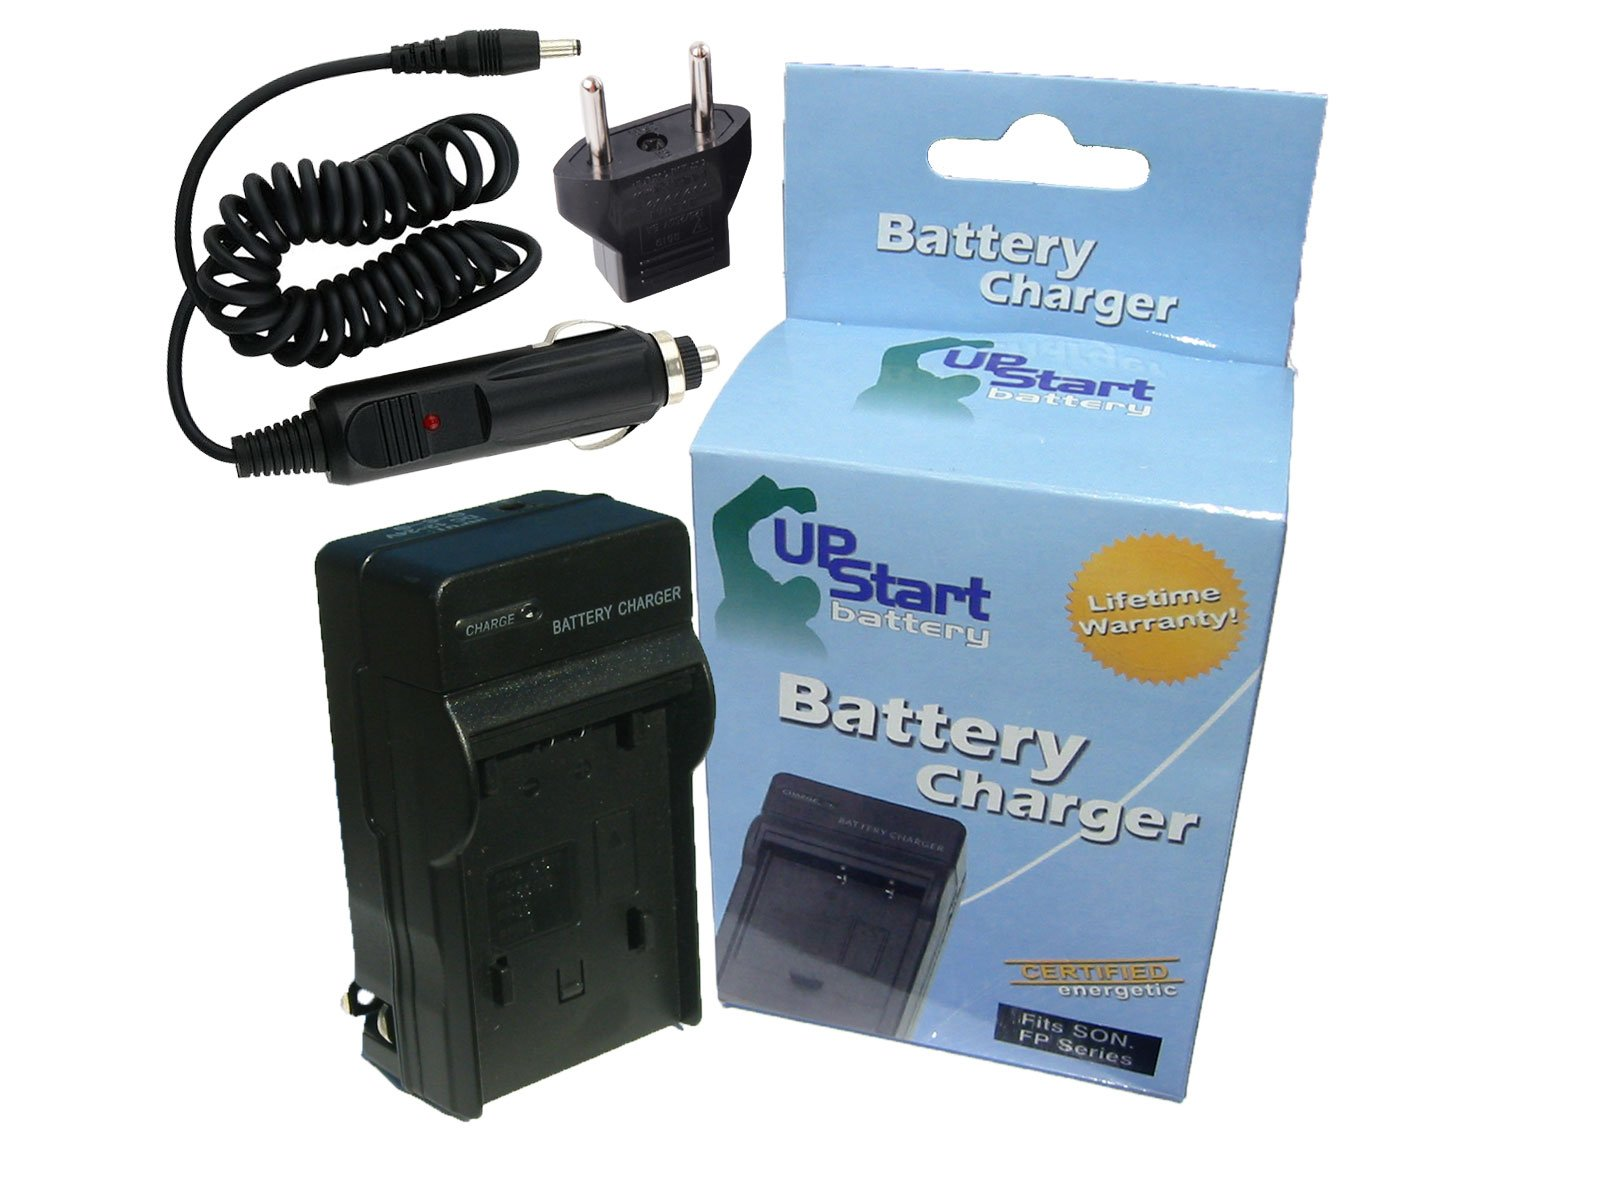 Replacement for Sony Cybershot DSC-W150 Charger with Car Plug & EU Adapter - Compatible with Sony NP-BG1 Digital Camera Chargers (100-240V)